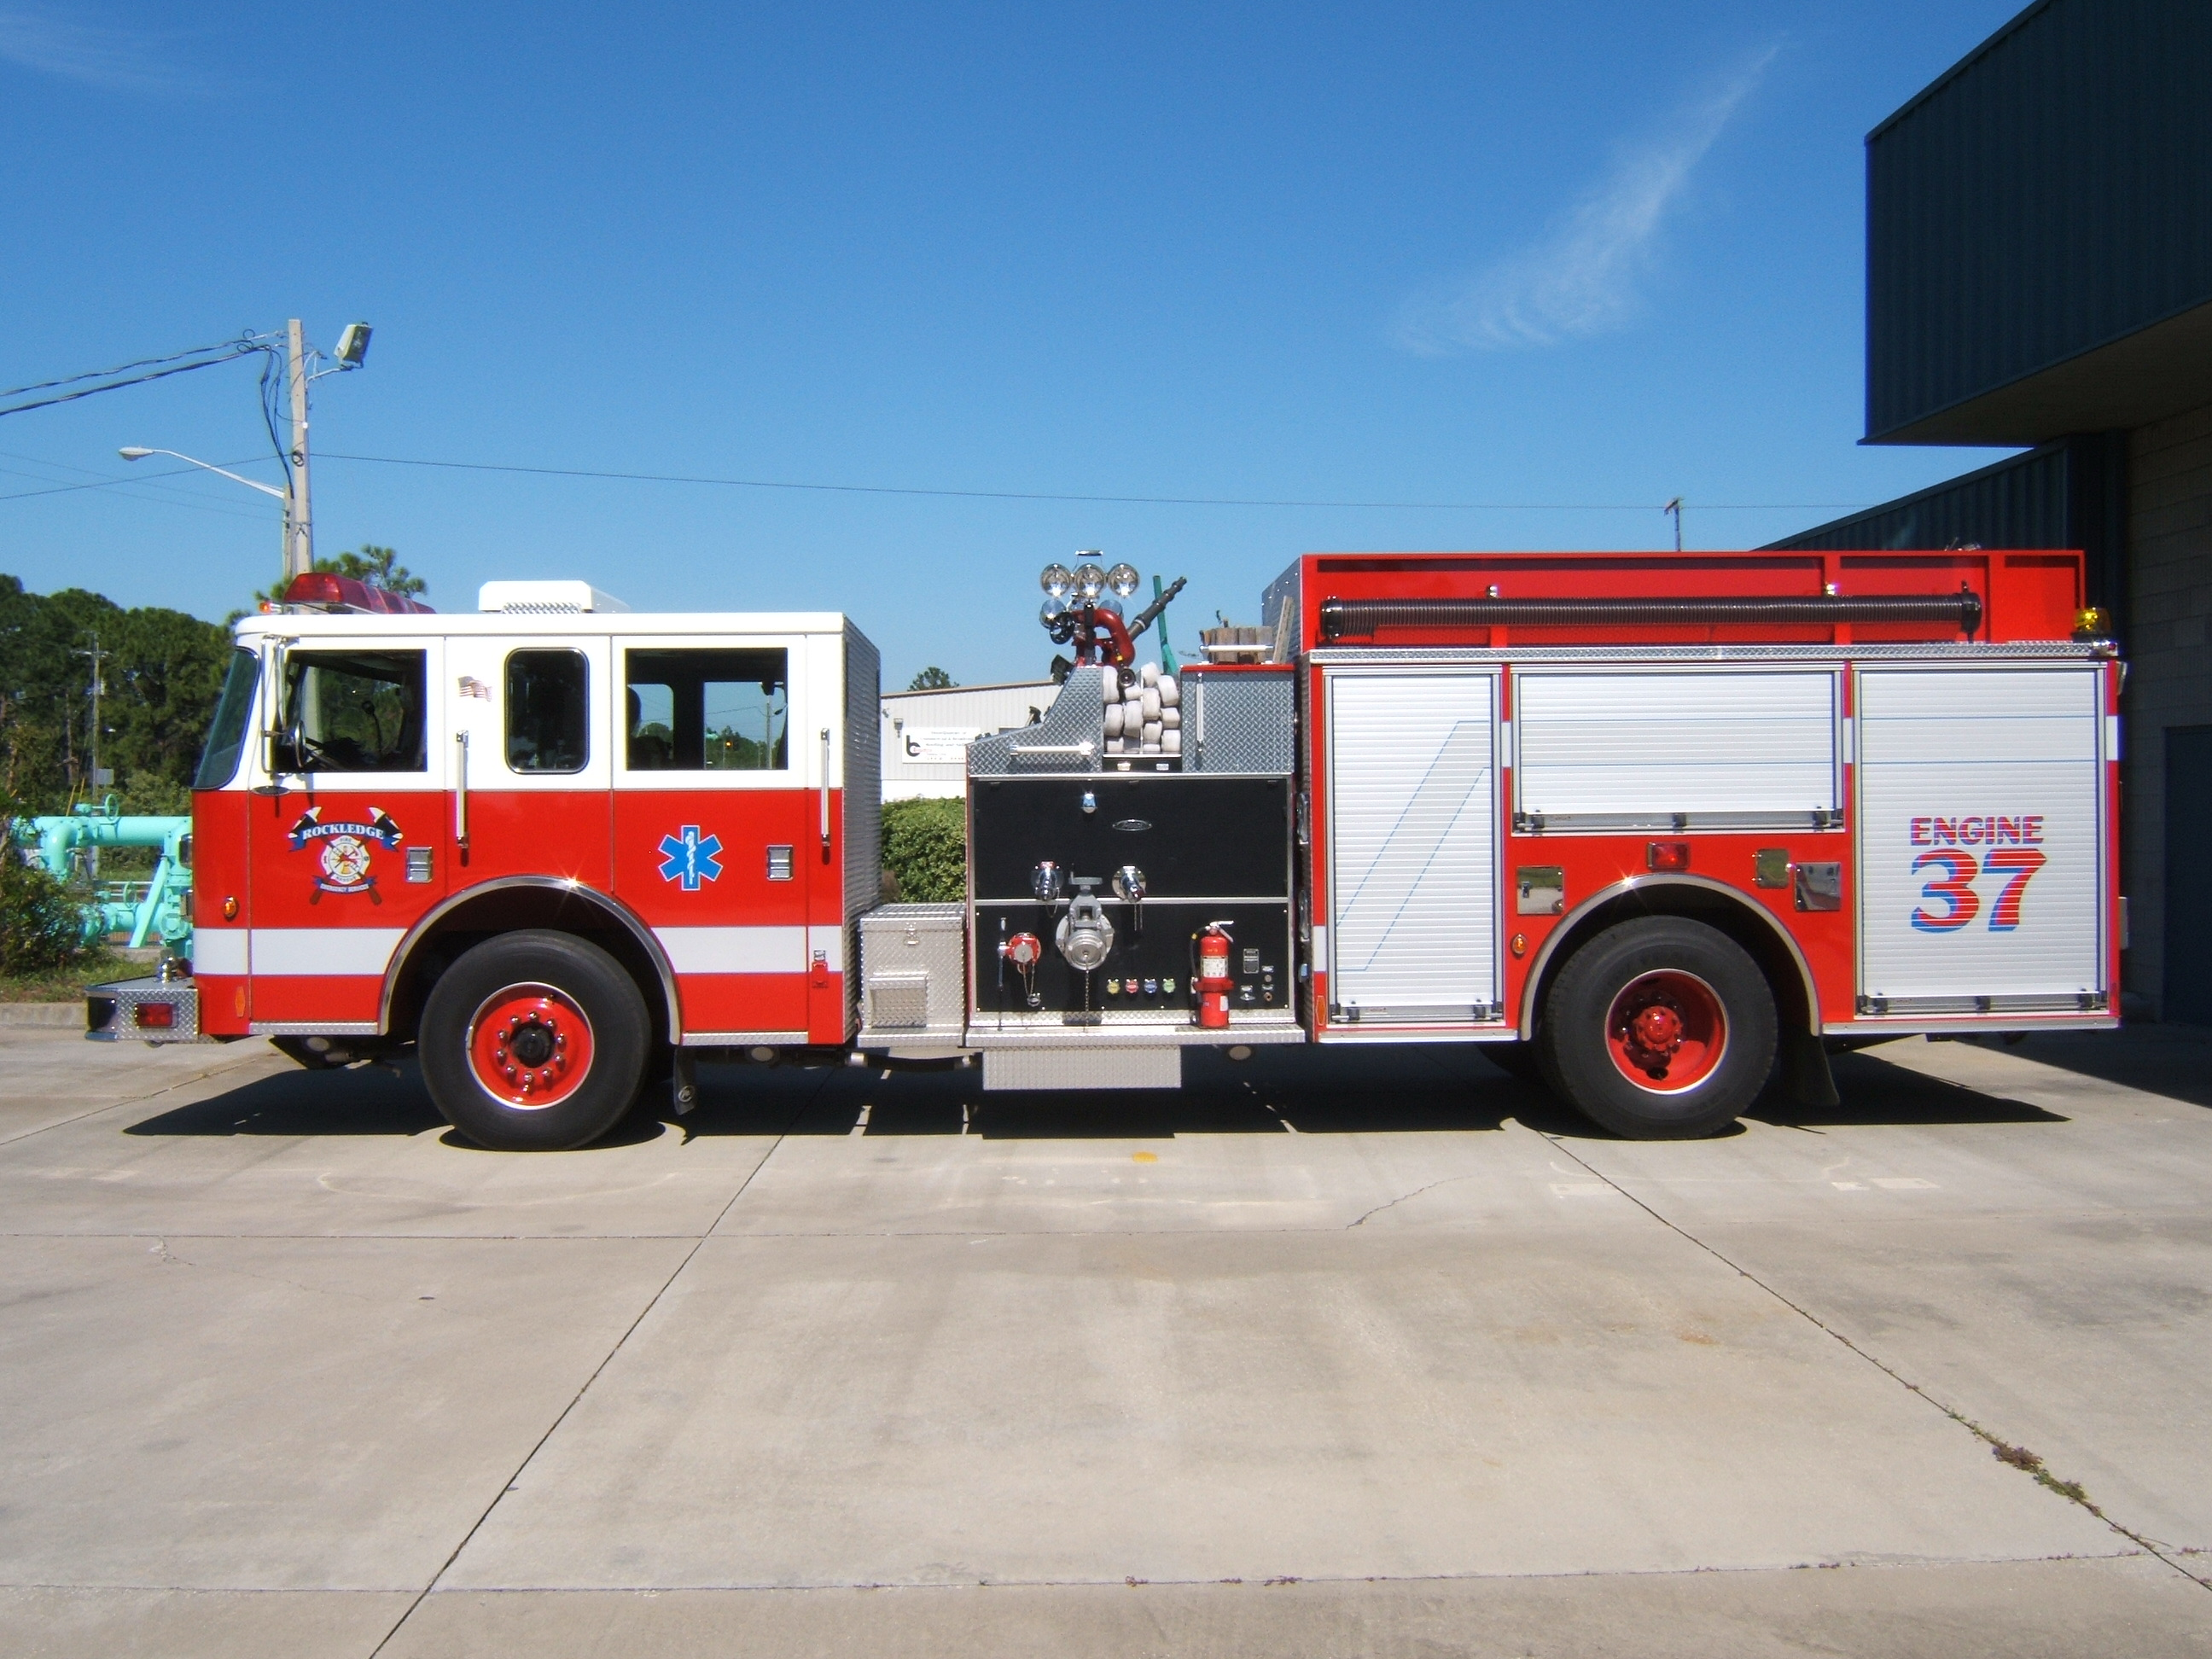 Engine 37 - 2008 Pierce Pumper